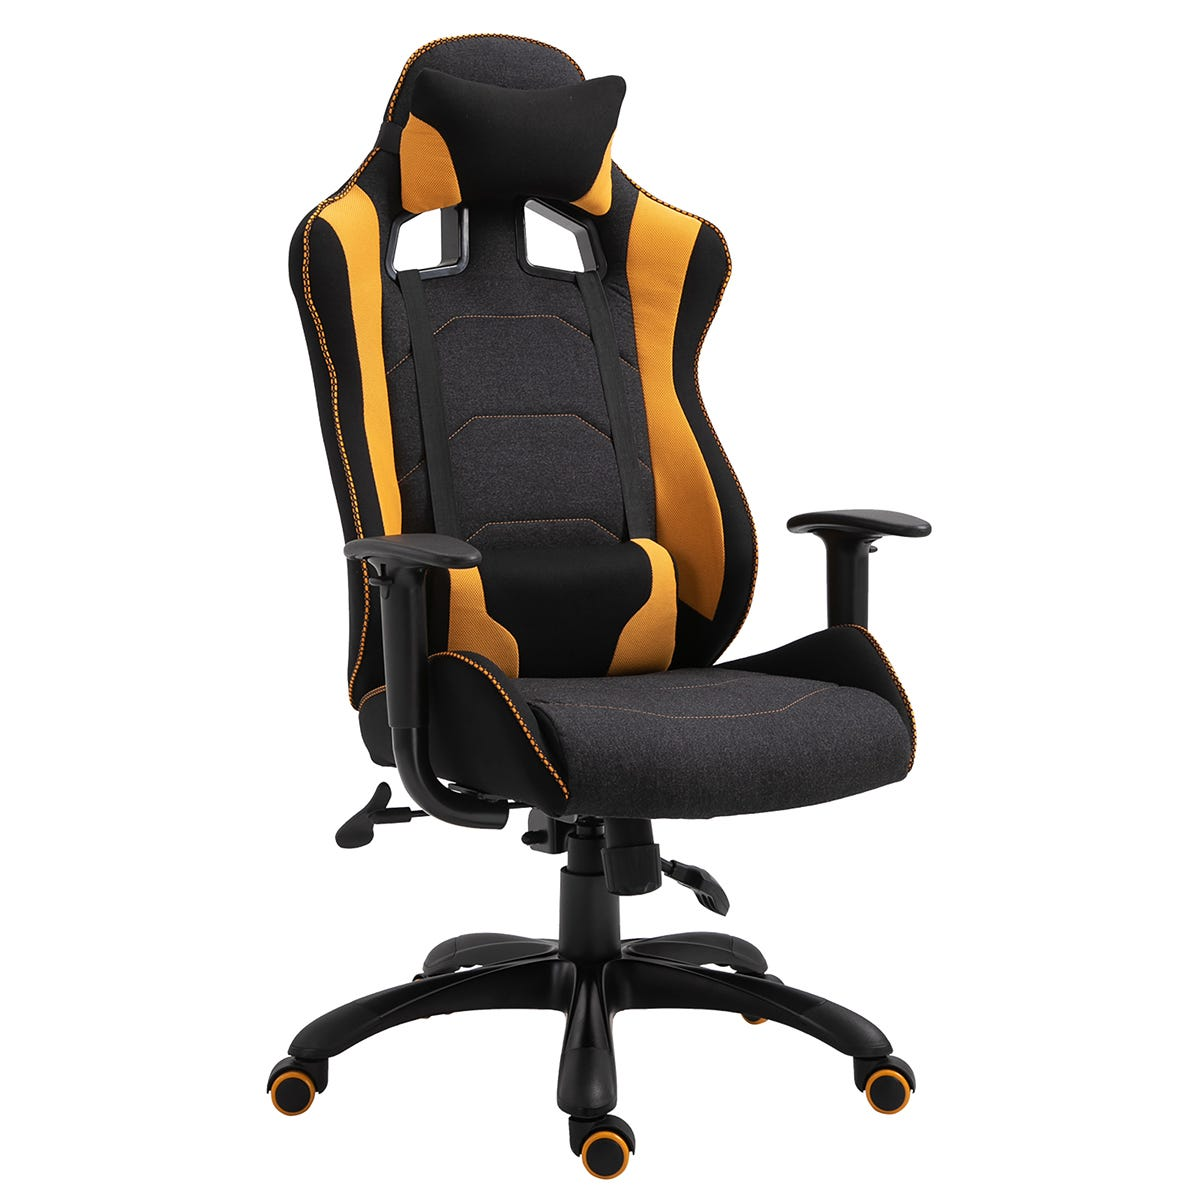 Equinox Excalibur 1 Fabric Gaming Chair with Adjustable Cushion - Yellow/Black